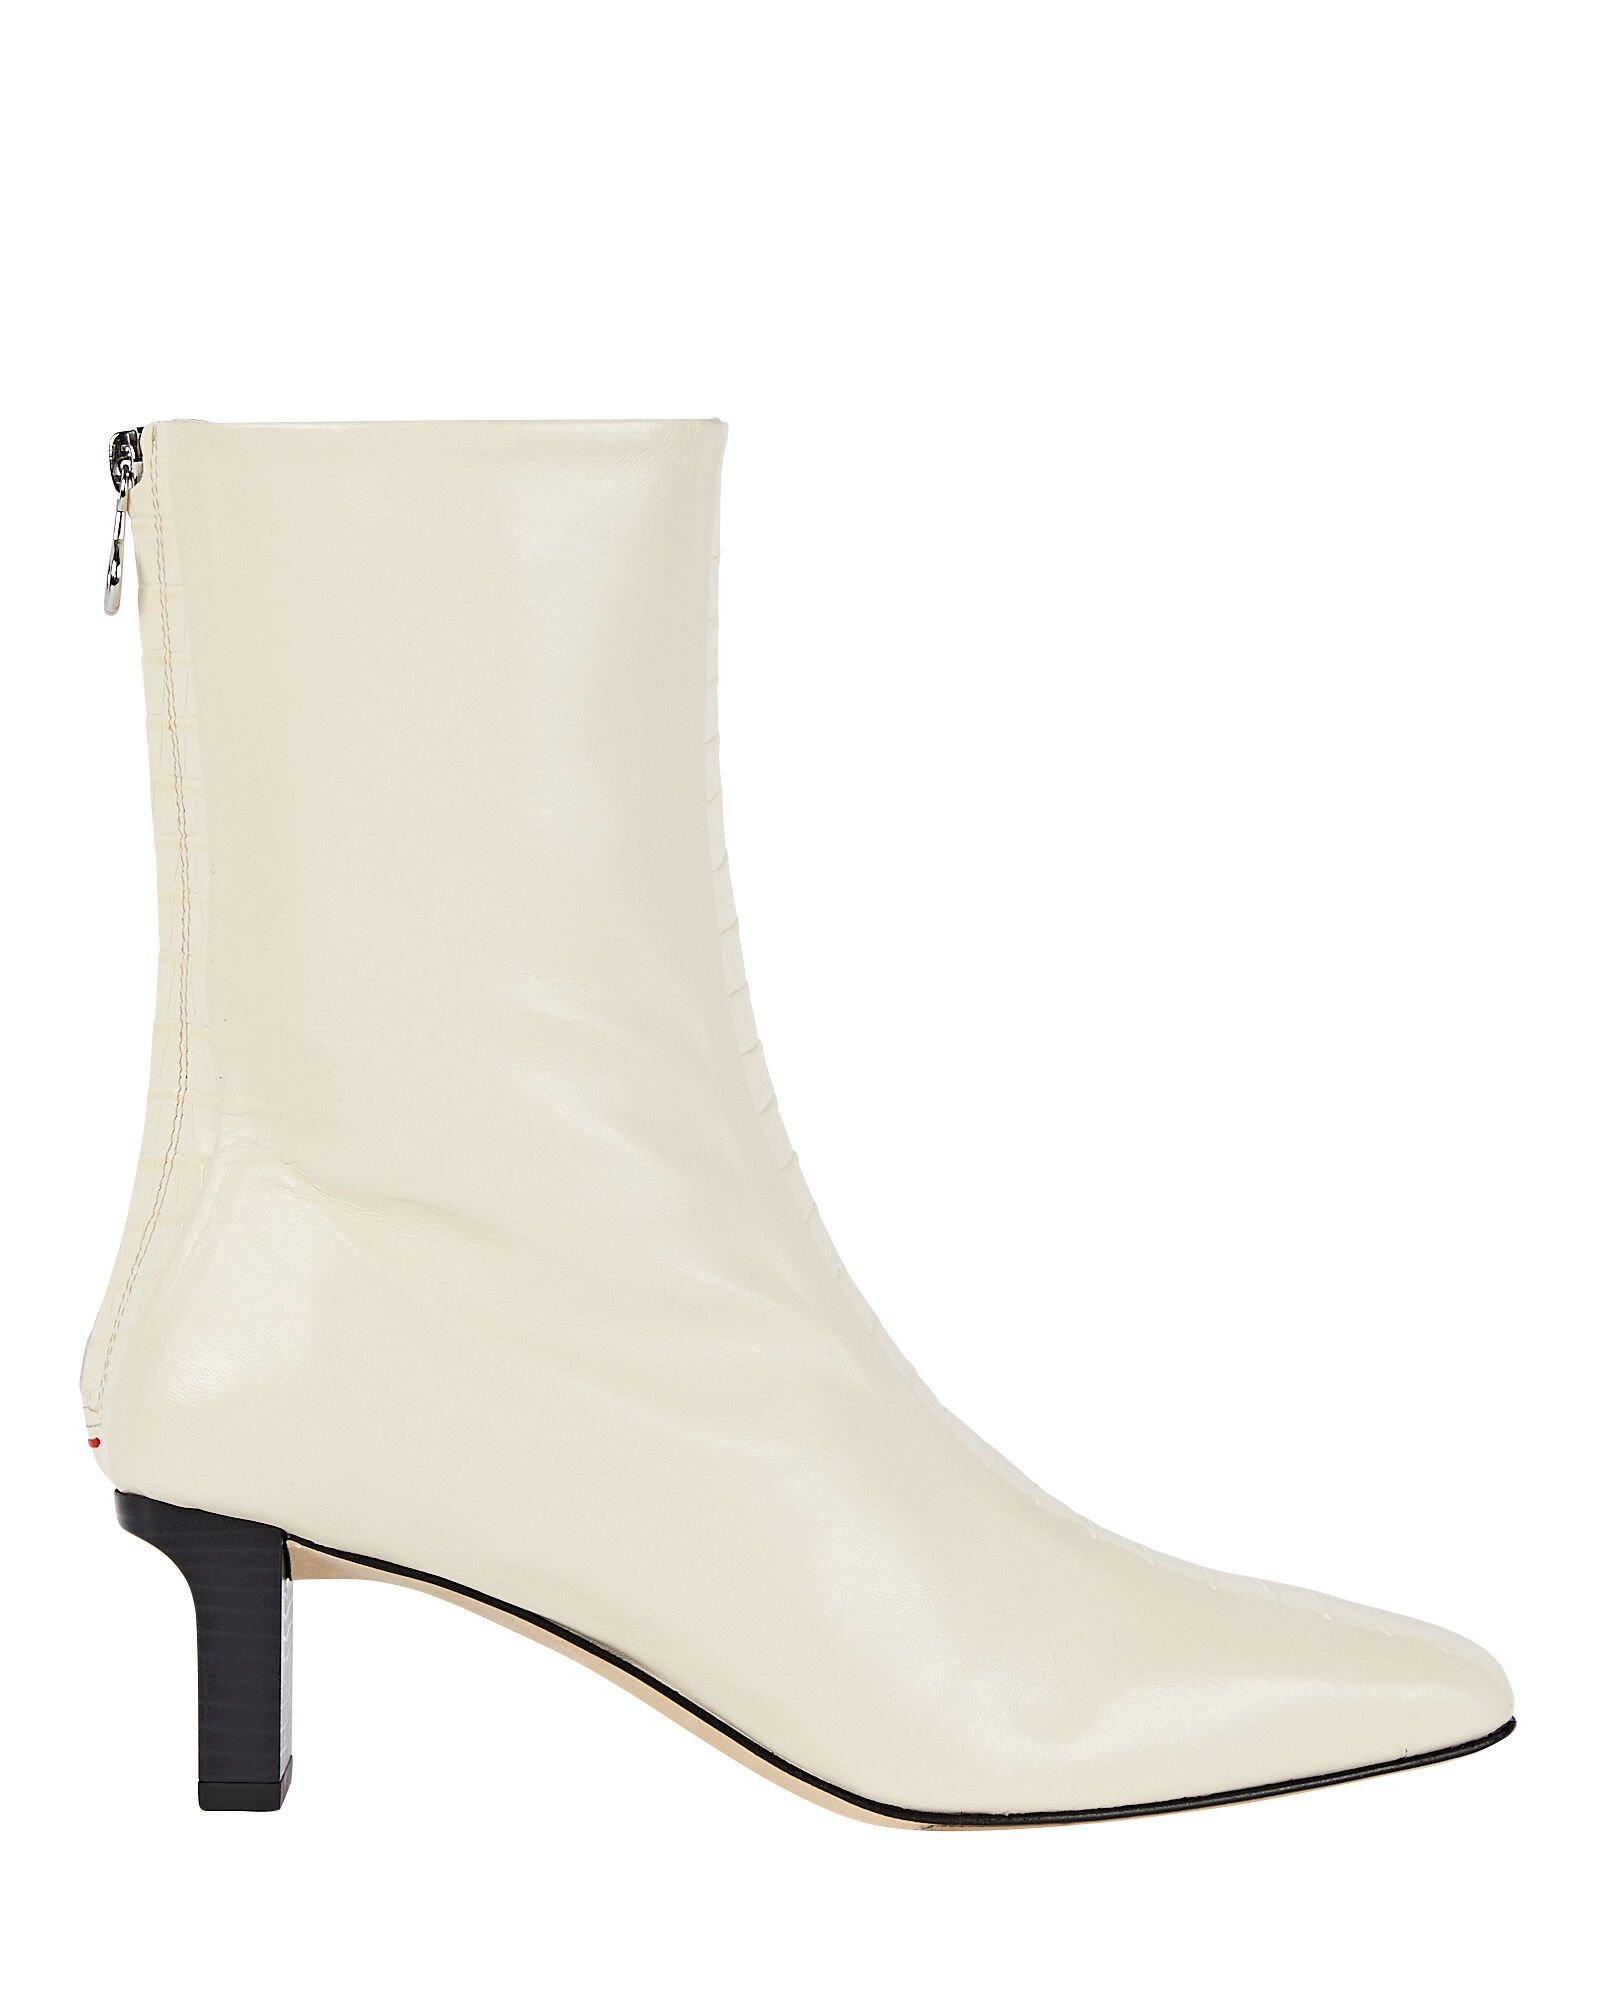 Molly Leather Ankle Booties, IVORY, hi-res